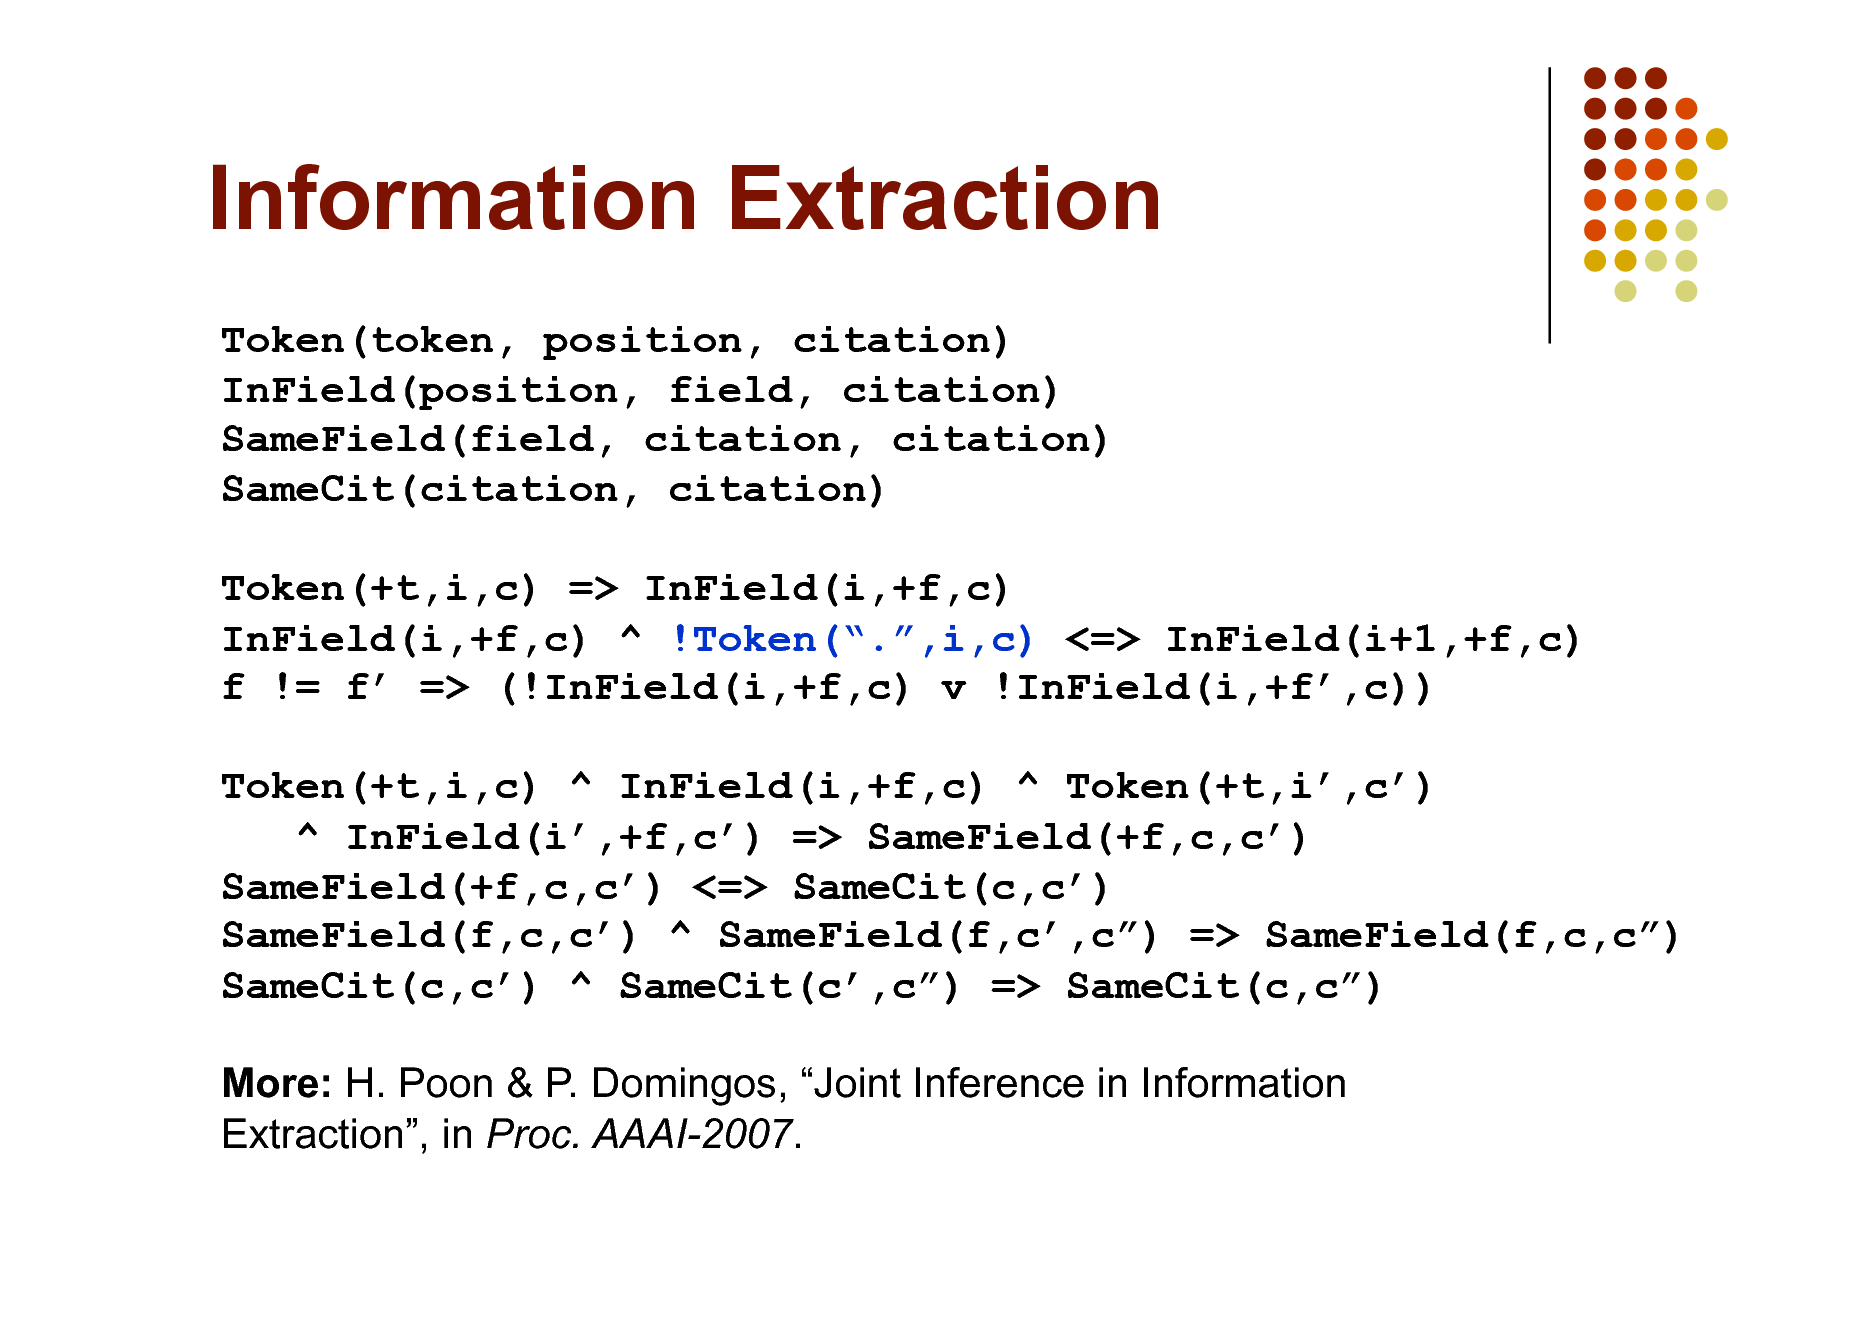 Slide: Information Extraction Token(token, position, citation) InField(position, field, citation) SameField(field, citation, citation) SameCit(citation, citation) Token(+t,i,c) => InField(i,+f,c) InField(i,+f,c) ^ !Token(.,i,c) <=> InField(i+1,+f,c) f != f => (!InField(i,+f,c) v !InField(i,+f,c)) Token(+t,i,c) ^ InField(i,+f,c) ^ Token(+t,i,c) ^ InField(i,+f,c) => SameField(+f,c,c) SameField(+f,c,c) <=> SameCit(c,c) SameField(f,c,c) ^ SameField(f,c,c) => SameField(f,c,c) SameCit(c,c) ^ SameCit(c,c) => SameCit(c,c) More: H. Poon & P. Domingos, Joint Inference in Information Extraction, in Proc. AAAI-2007.